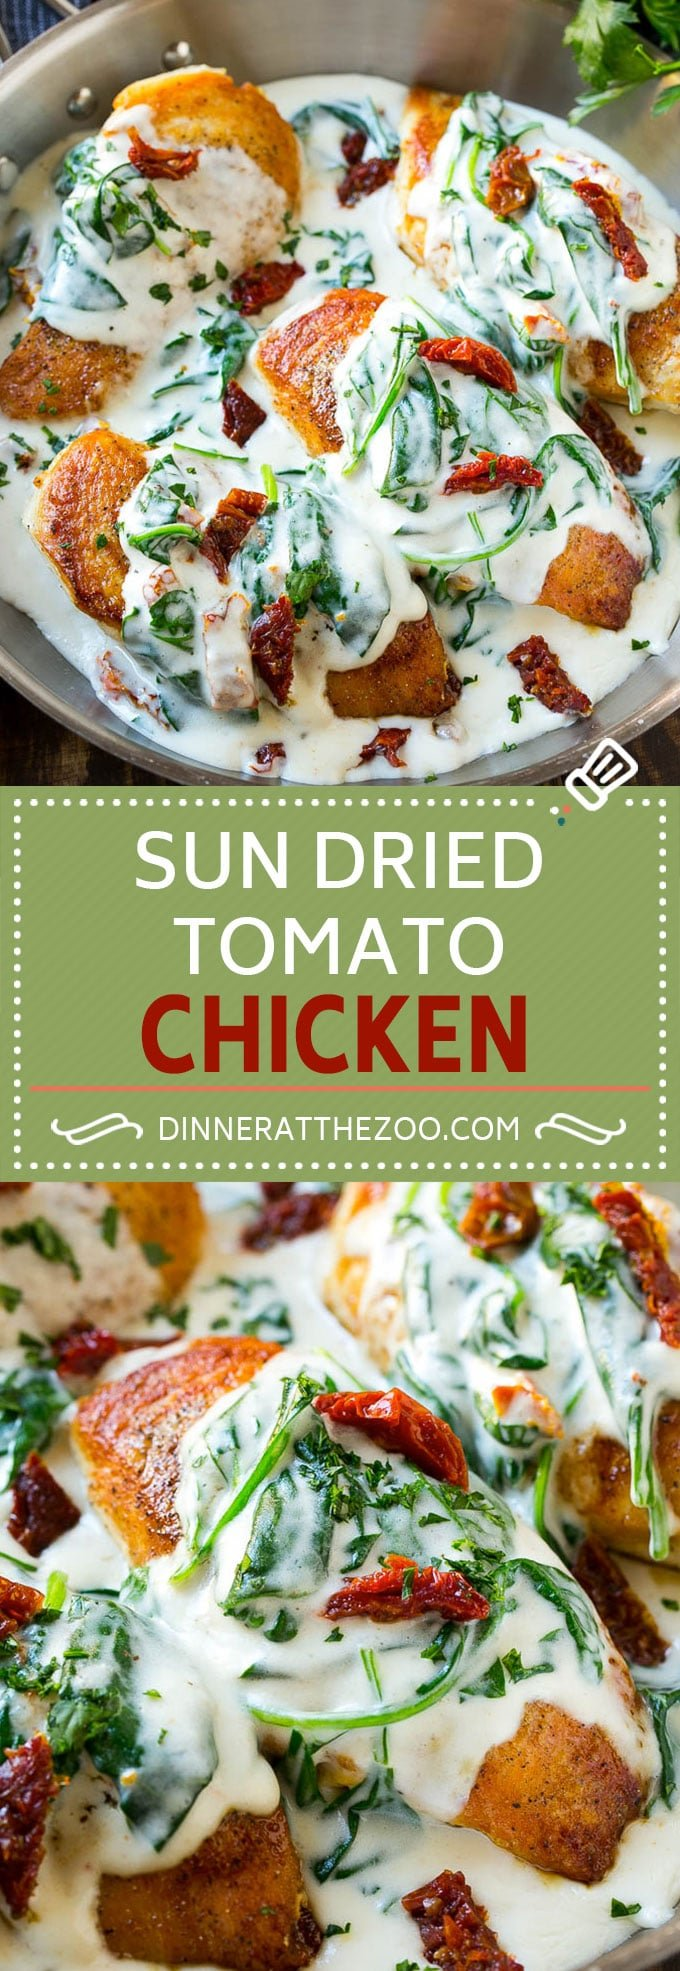 Sun Dried Tomato Chicken Recipe | Chicken in Sun Dried Tomato Sauce | Chicken with Cream Sauce | Chicken with Spinach | Italian Chicken #chicken #lowcarb #tomatoes #spinach #italianfood #dinner #dinneratthezoo